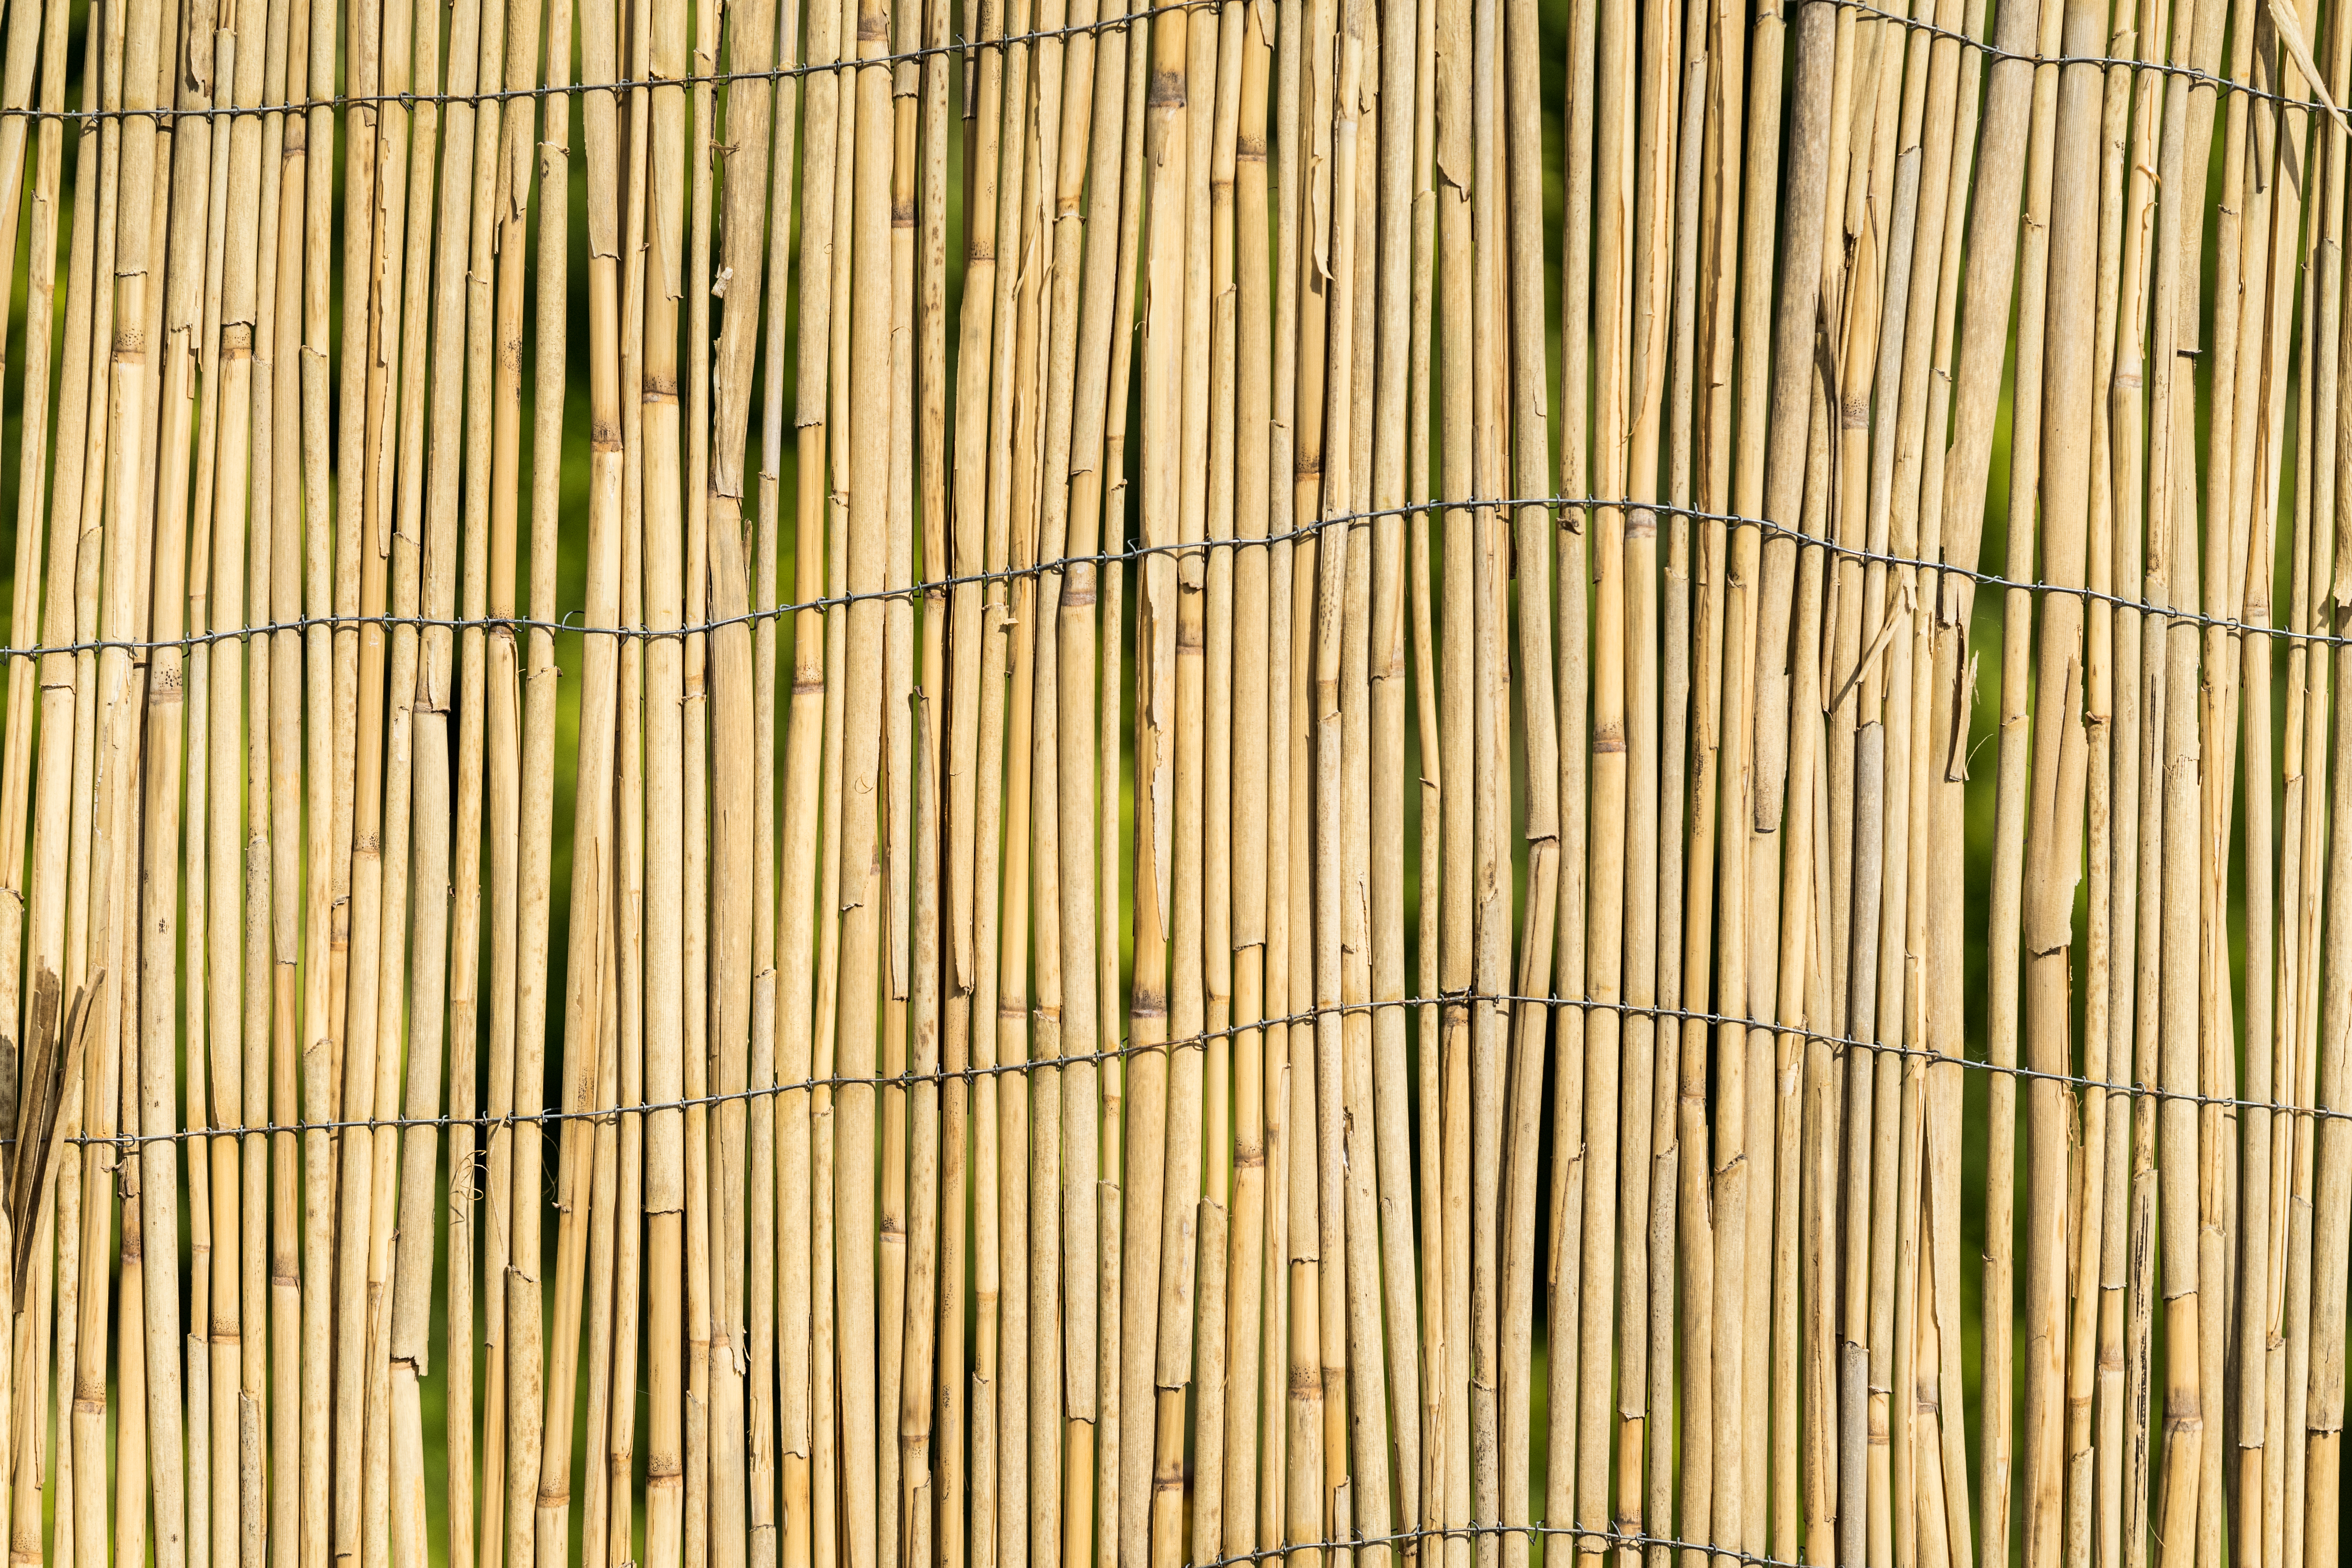 garden-bamboo-wall-fence-texture-background-picjumbo-com